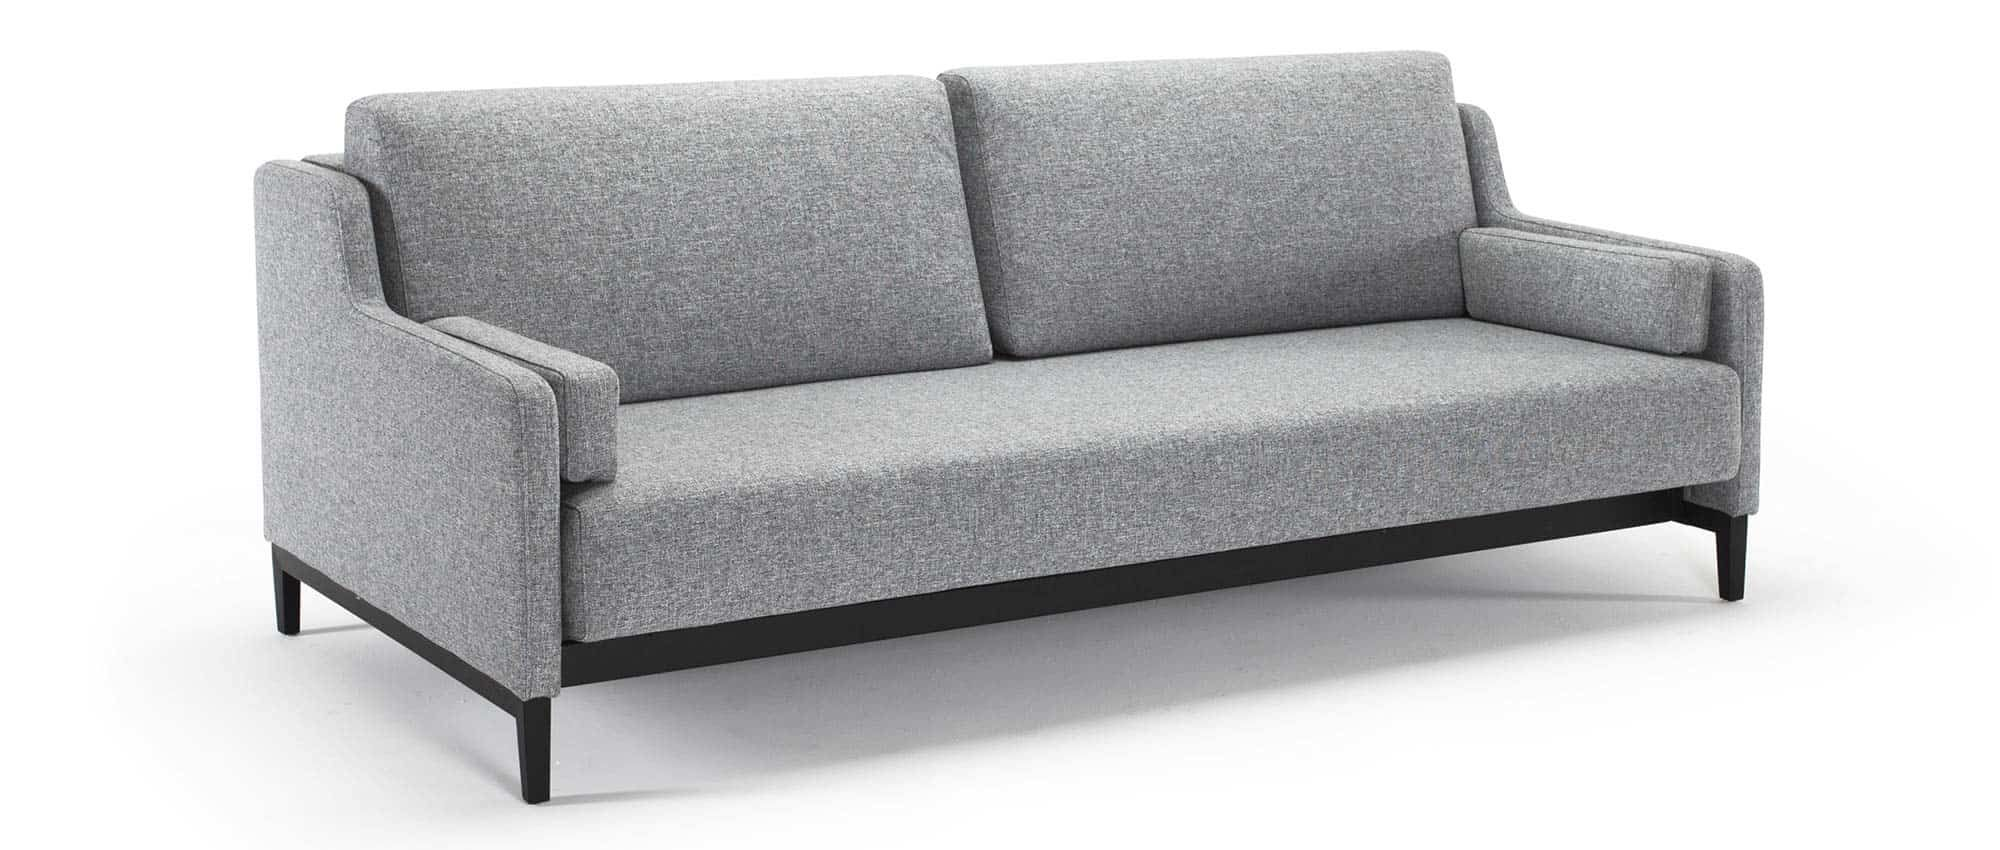 Bettsofa Gestell Bettsofa 160x200 Awesome Eckteil Links Schlafsofa Hollie